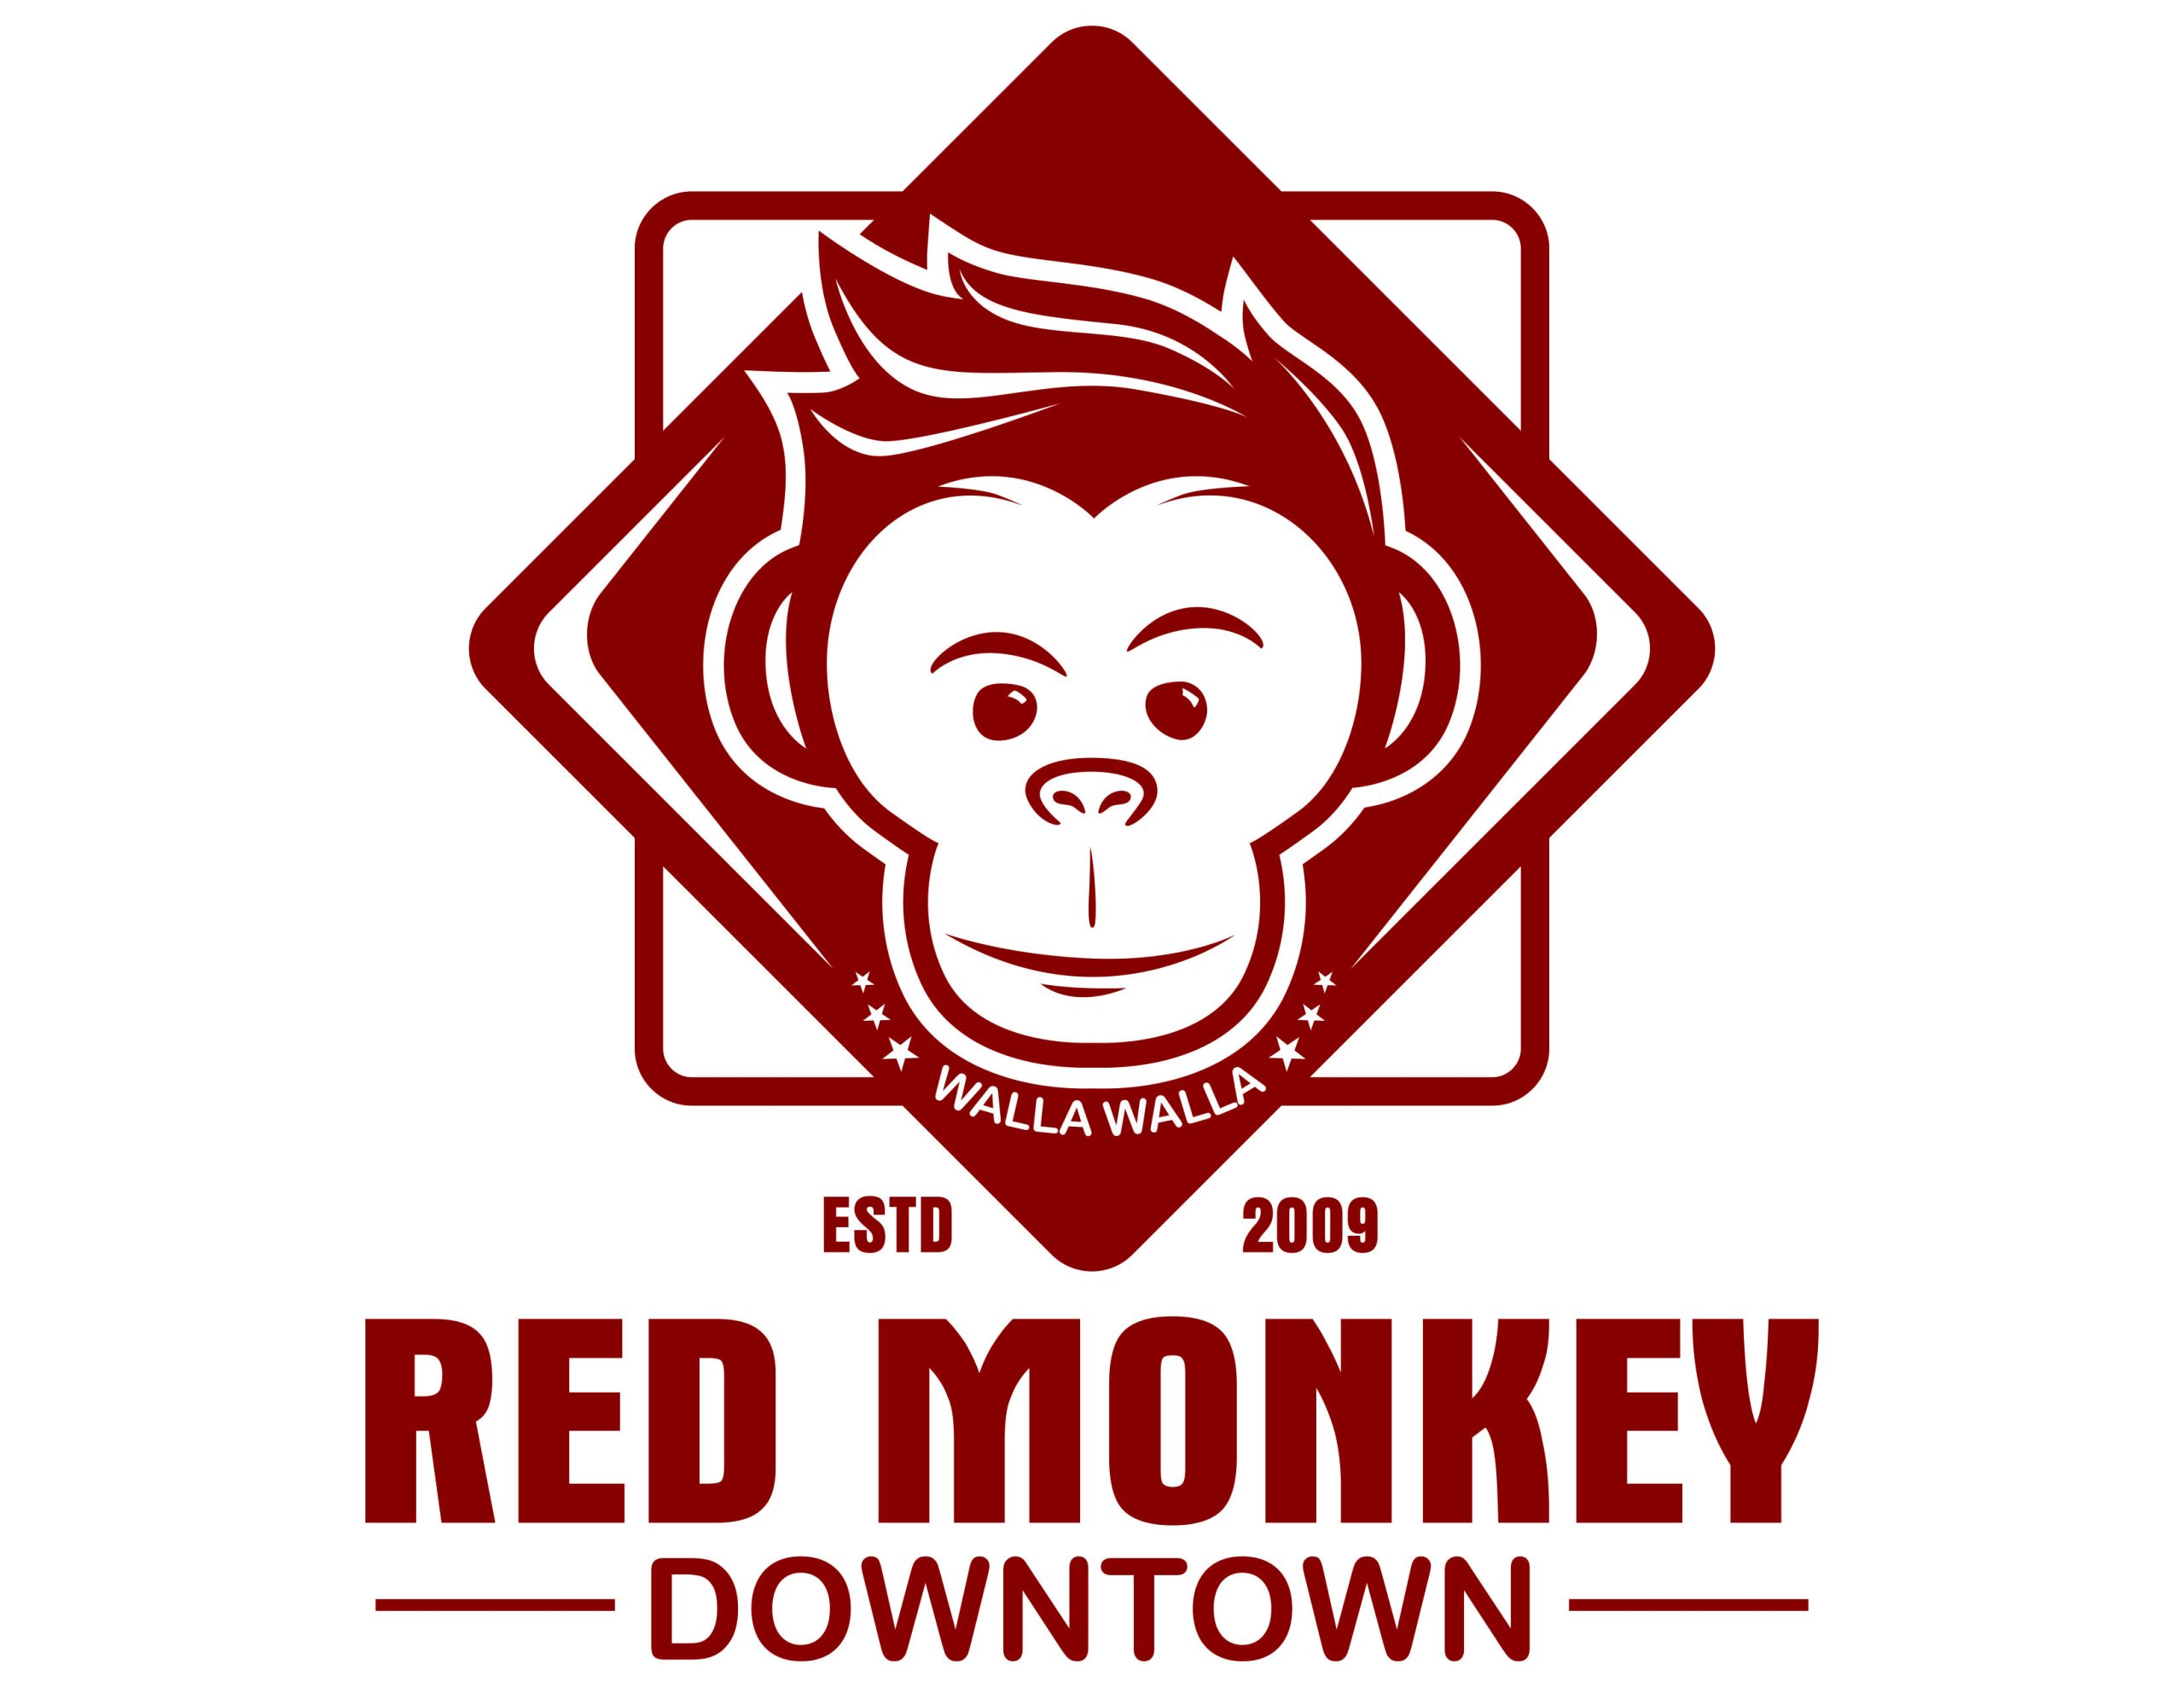 red monkay downtown walla walla background